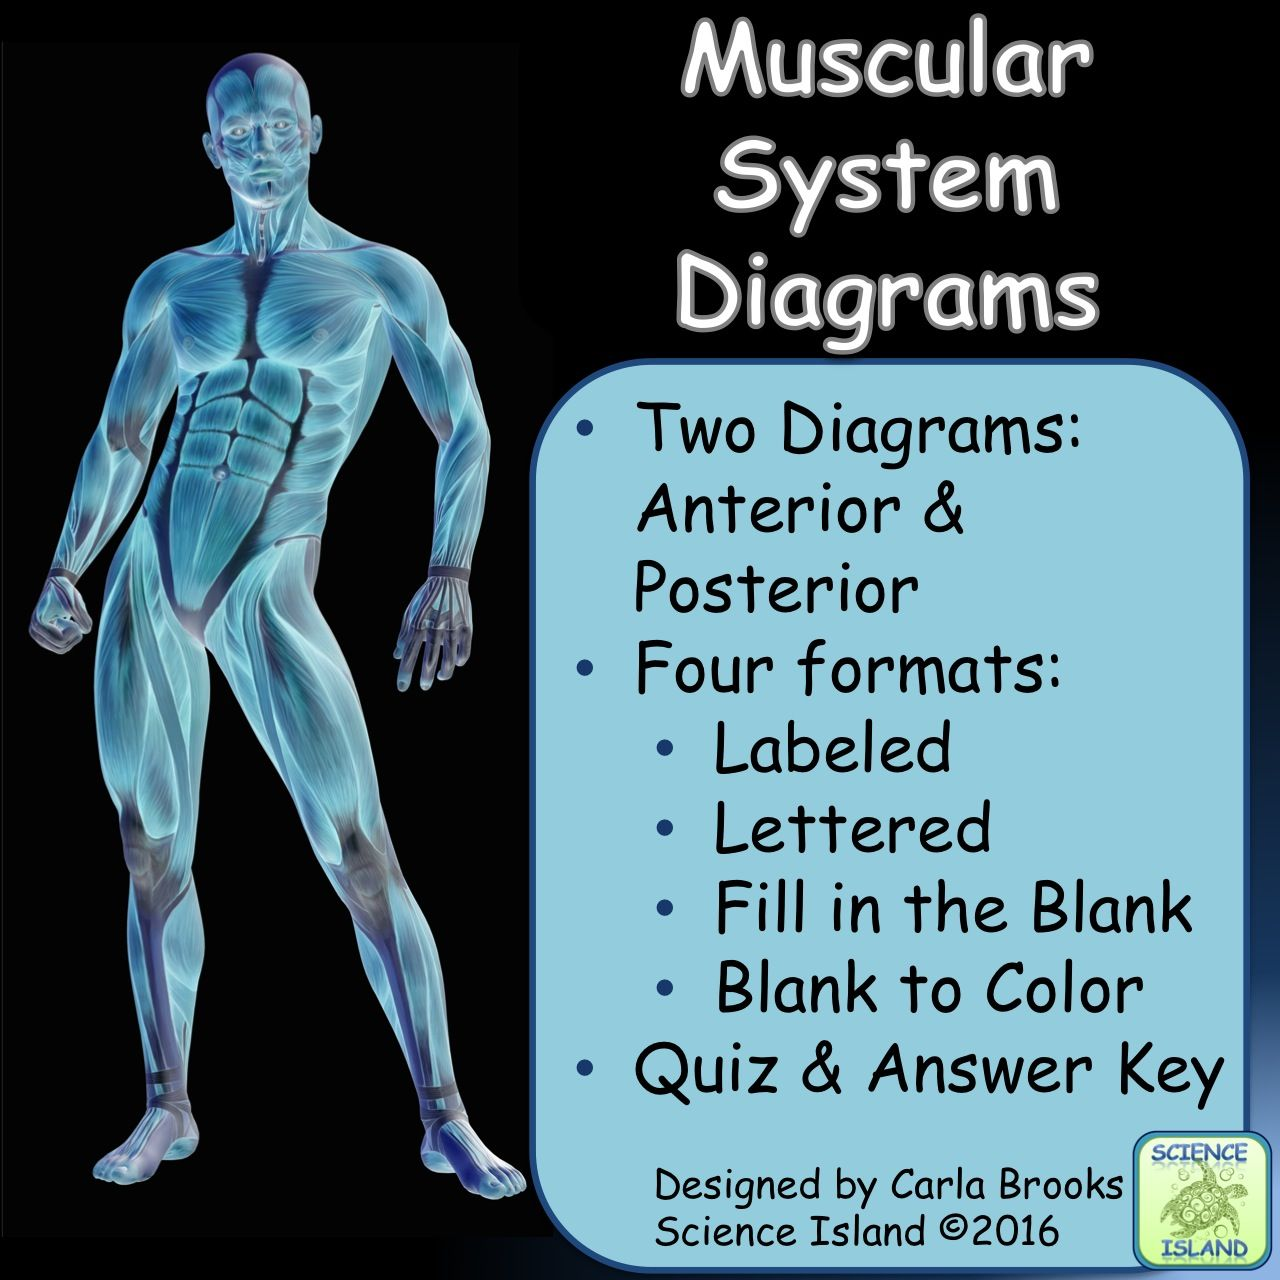 Muscular System Diagrams: Study, Label, Quiz & Color | Skeletal ...